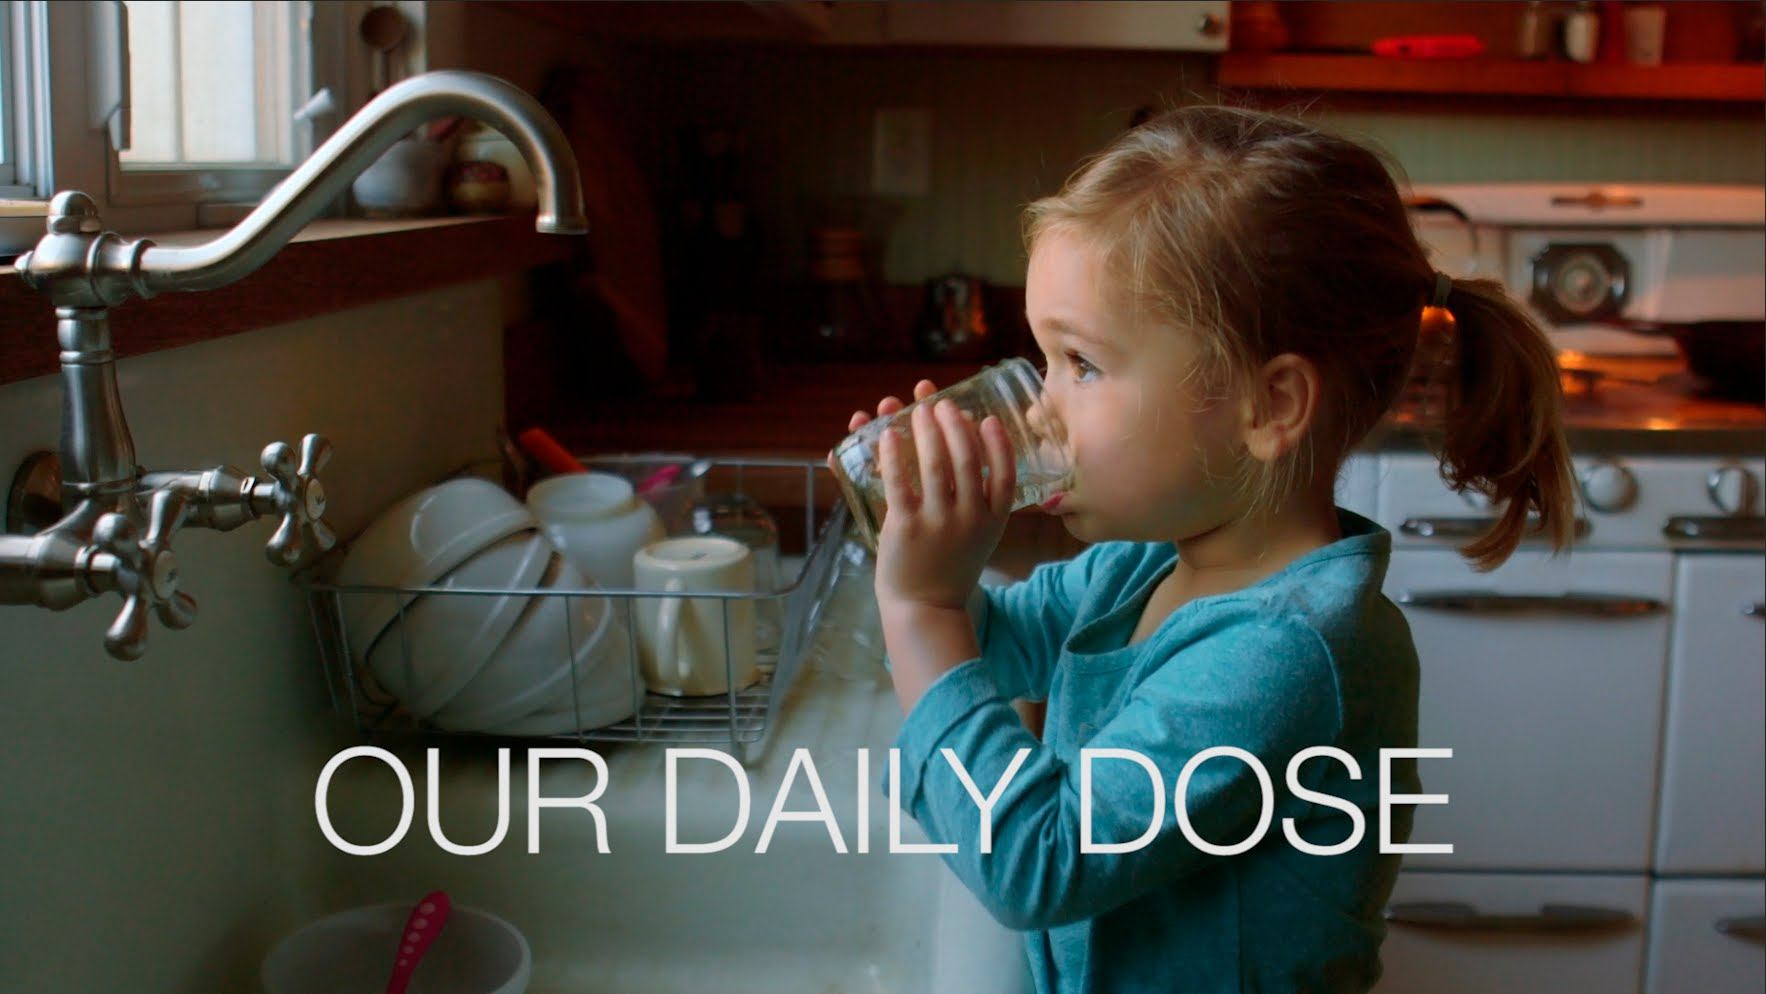 Our Daily Dose: The Lunacy of Water Fluoridation